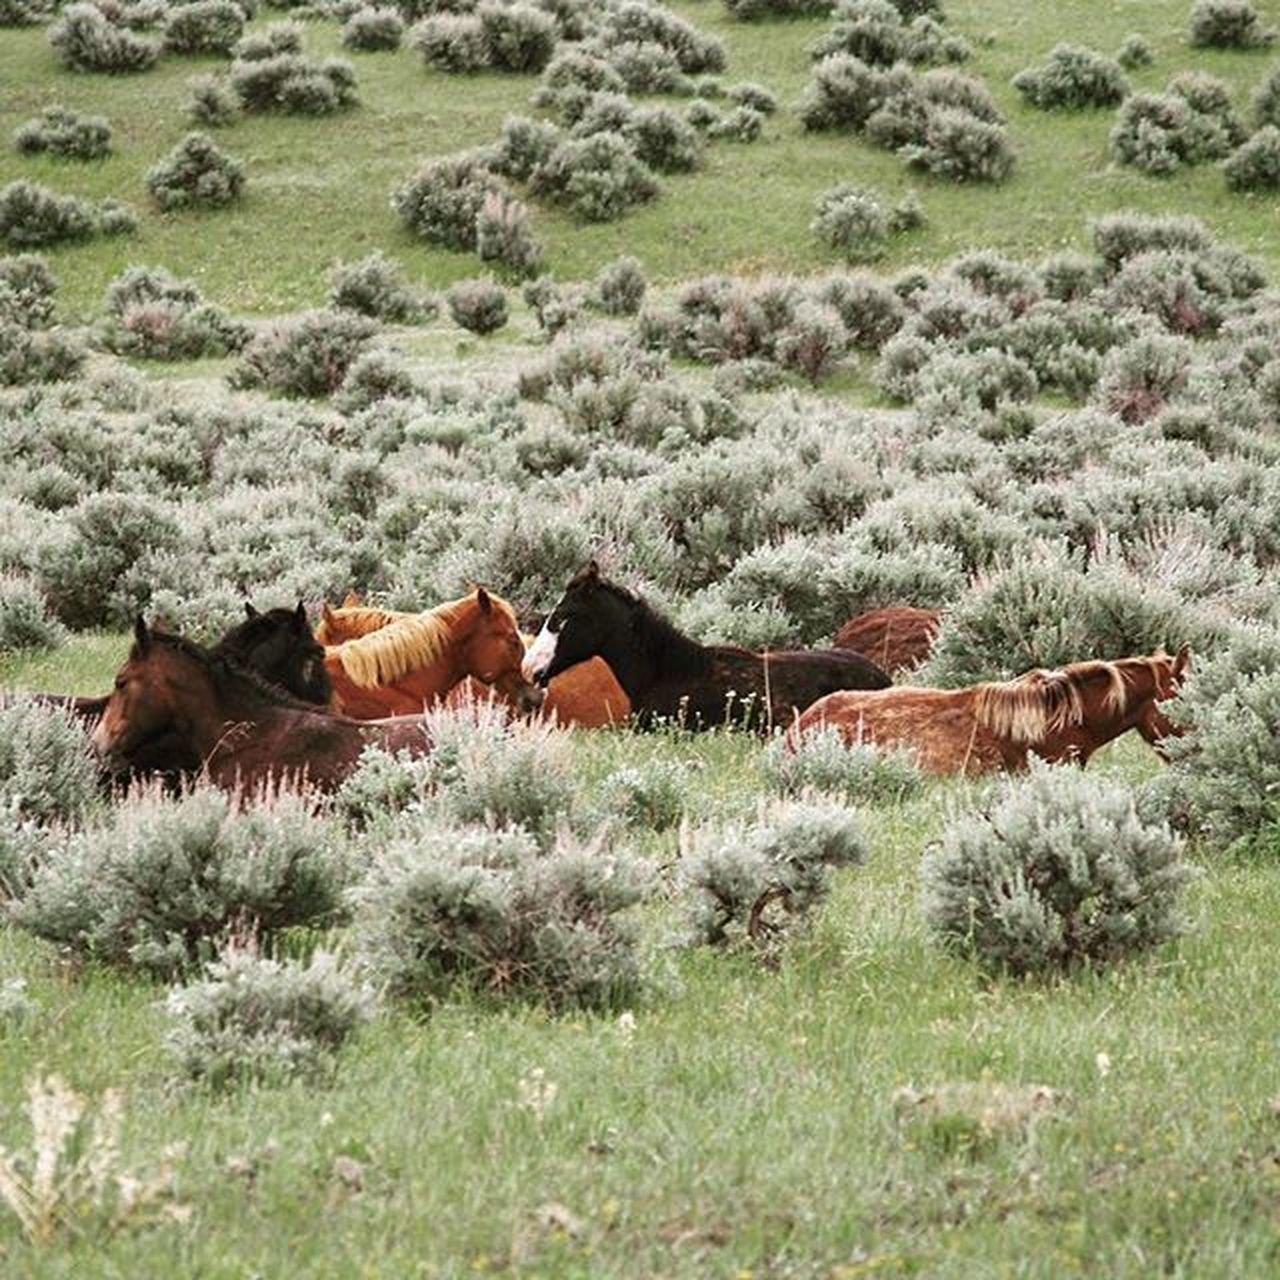 An old picture. Wild horses at Little Big Horn. Horses Littlebighorn Wyoming Roadtrip Wildhorses